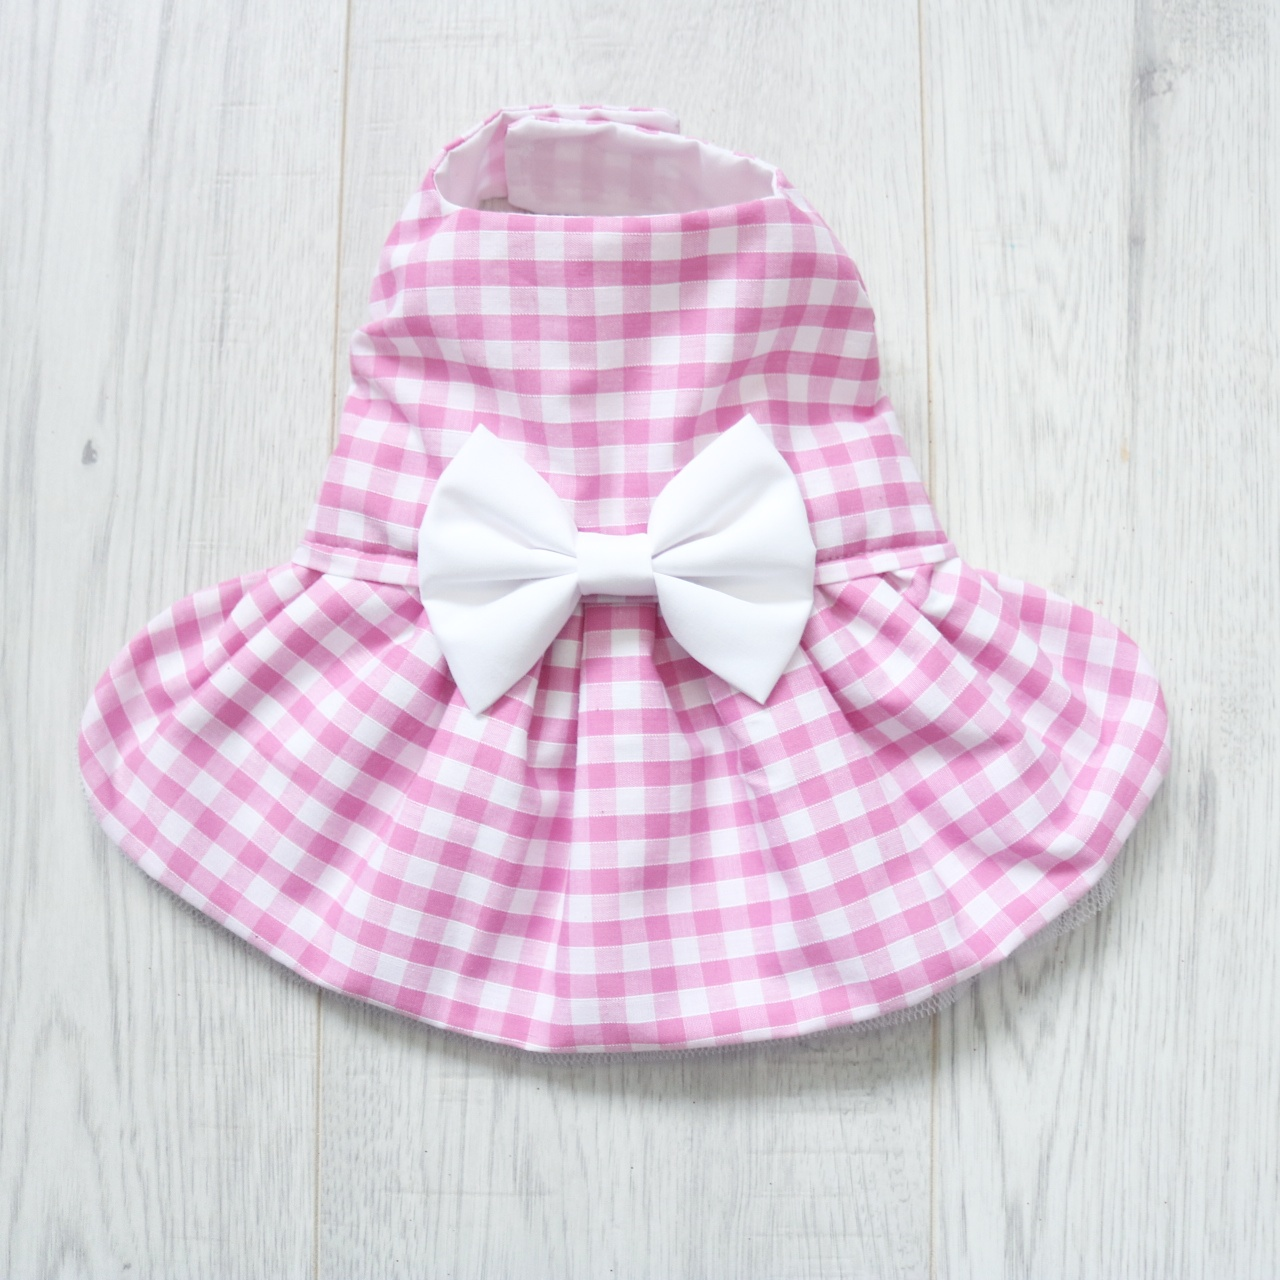 pink gingham dog dress